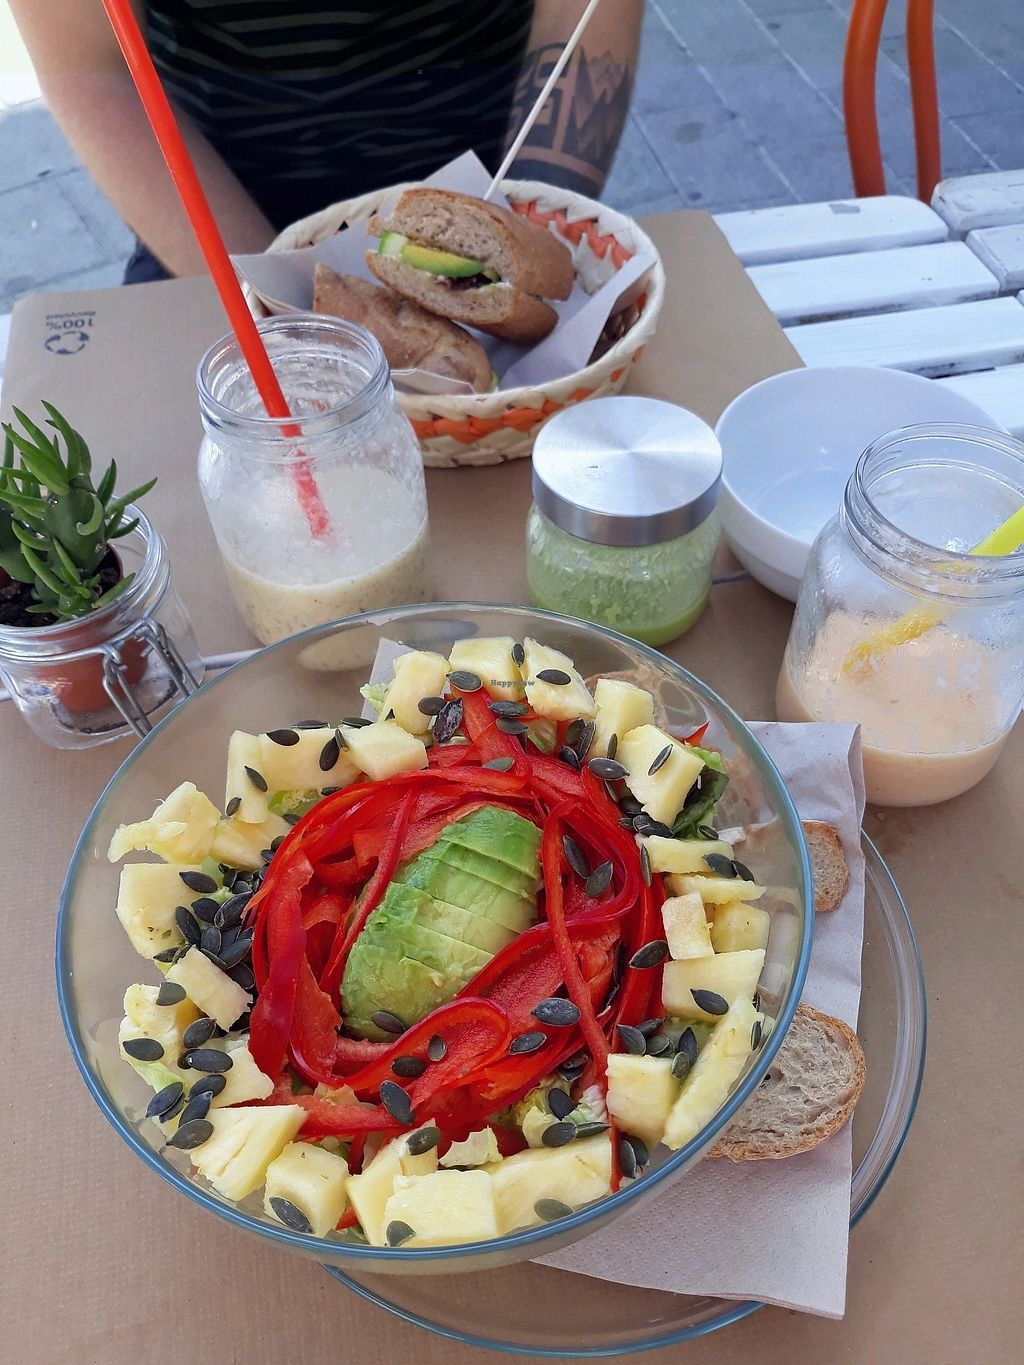 "Photo of H2O Juice Bar & Vegan Cafe  by <a href=""/members/profile/TamaraVdBerg"">TamaraVdBerg</a> <br/>Bahamas salad and Panama sandwich  <br/> January 4, 2018  - <a href='/contact/abuse/image/64475/342954'>Report</a>"